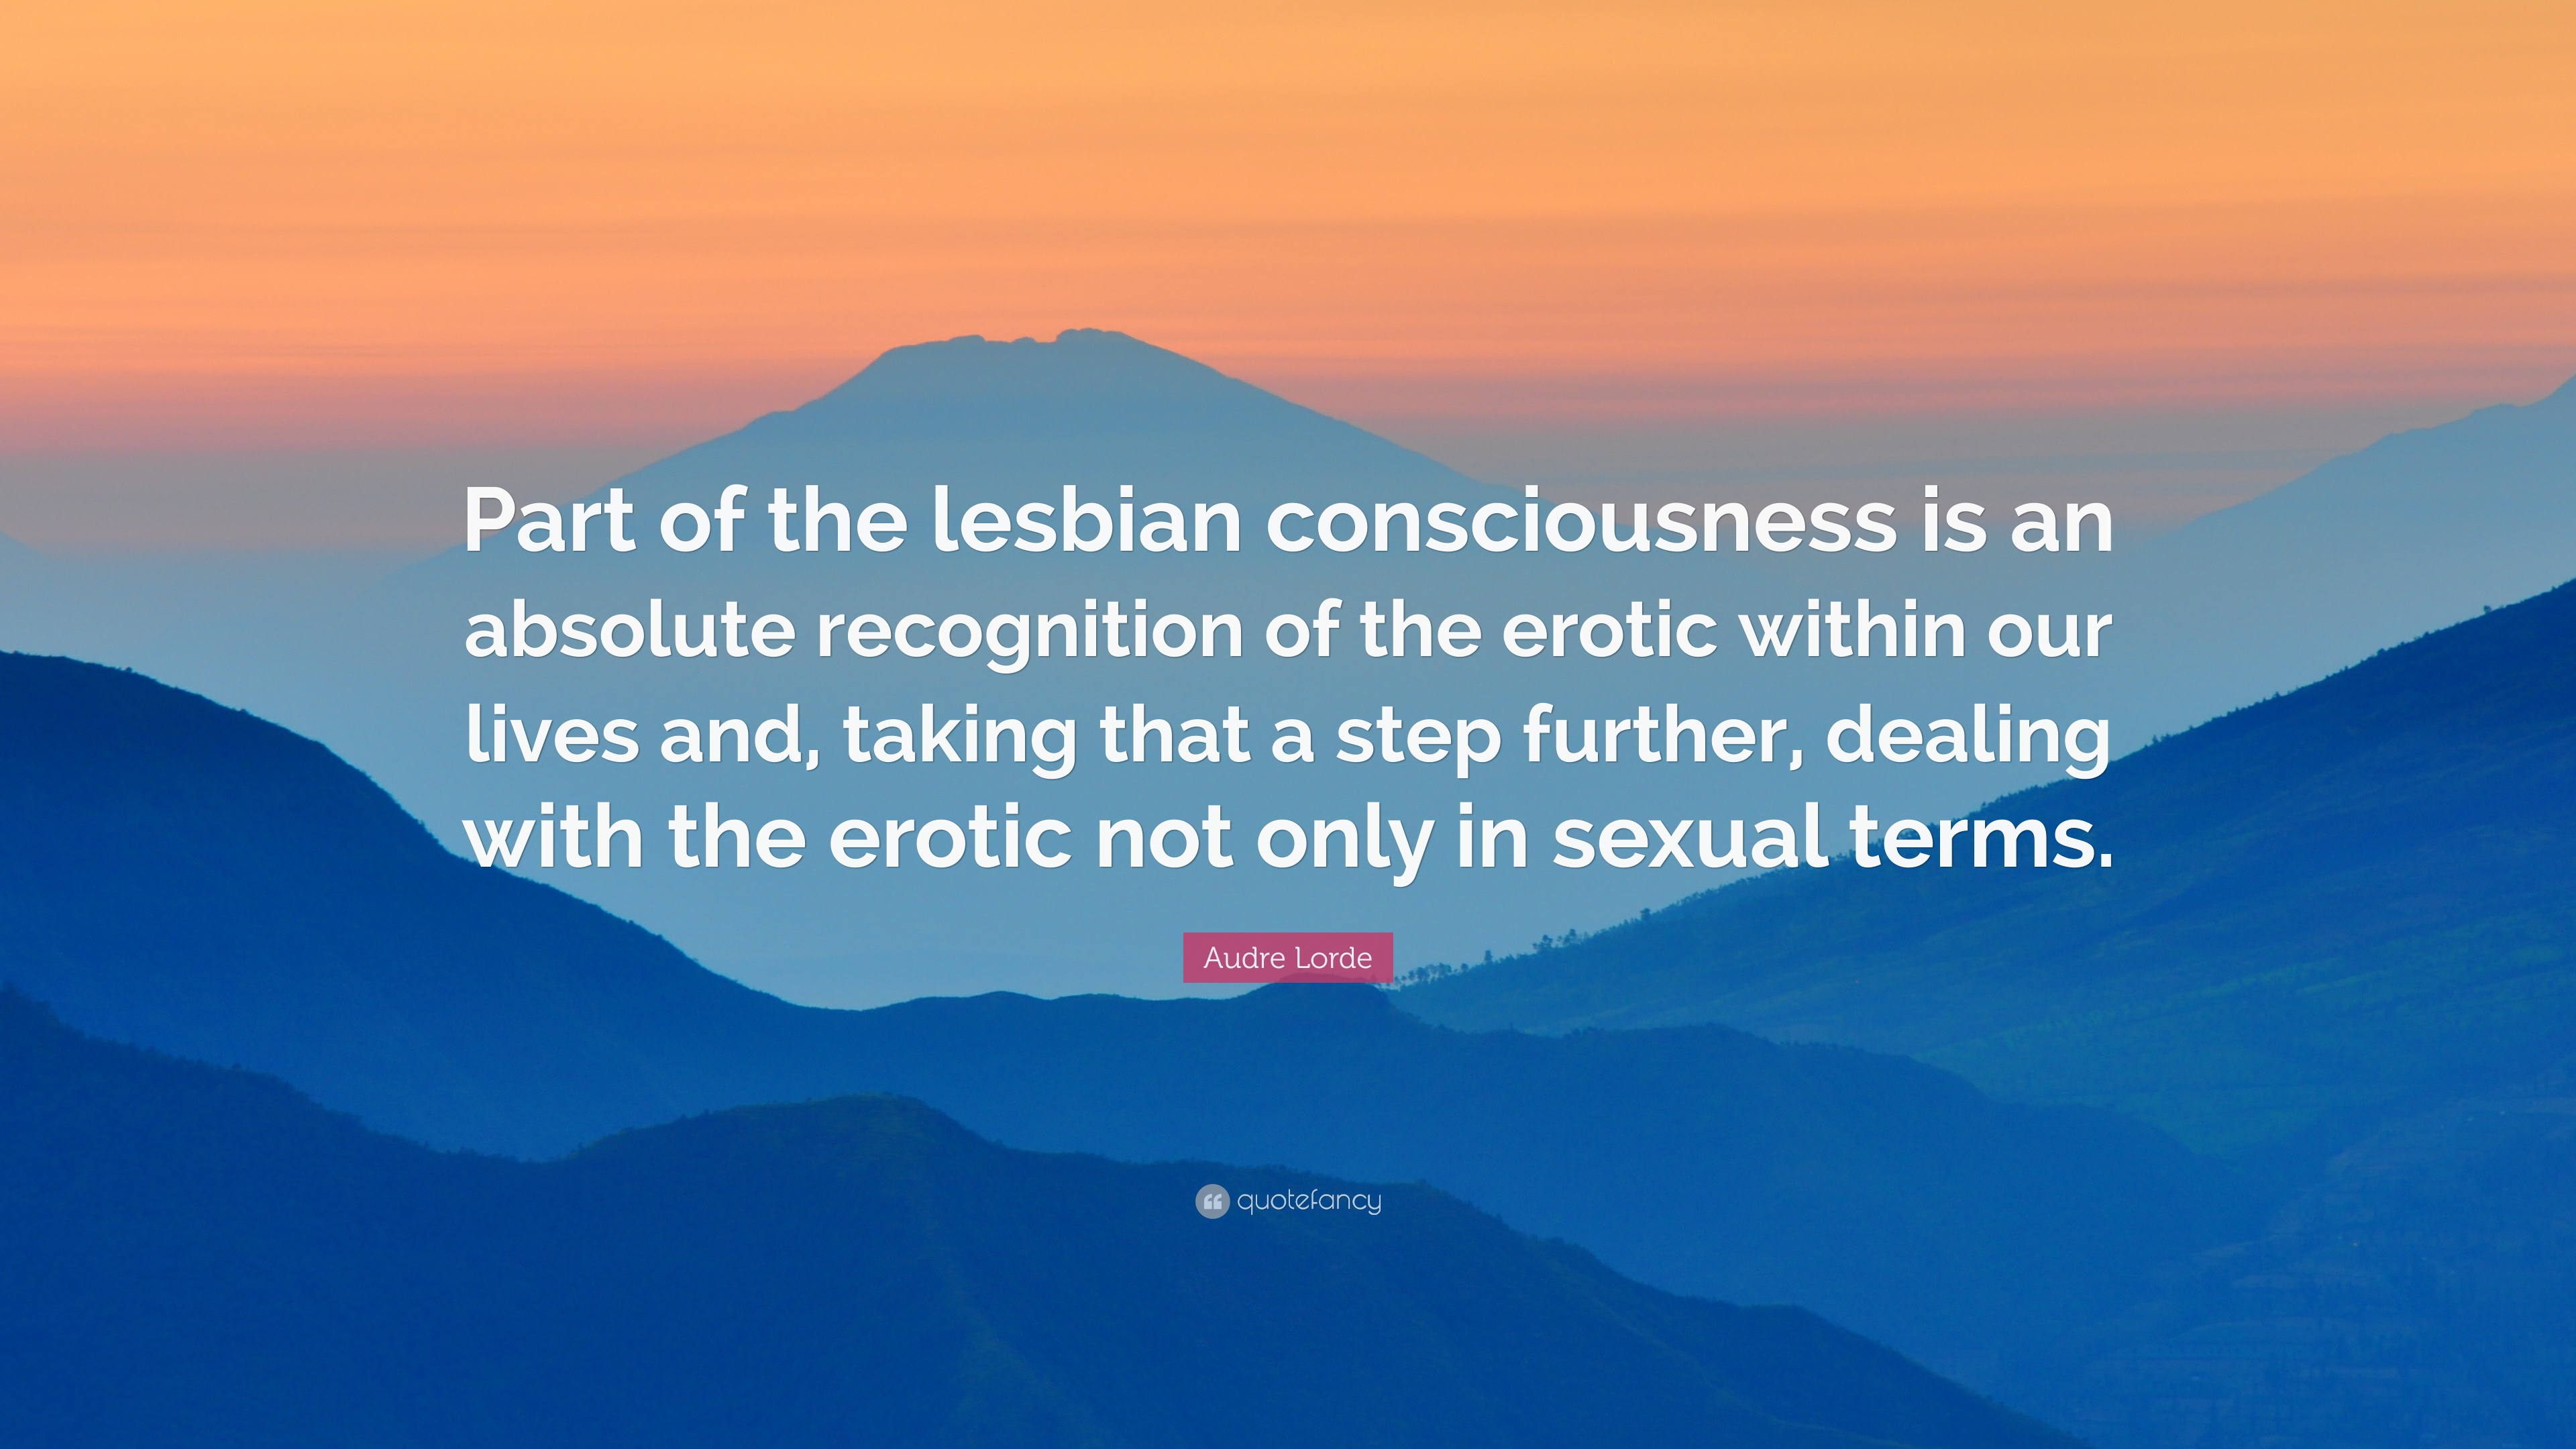 Audre Lorde Quote Part Of The Lesbian Consciousness Is An Absolute Recognition Of -2715